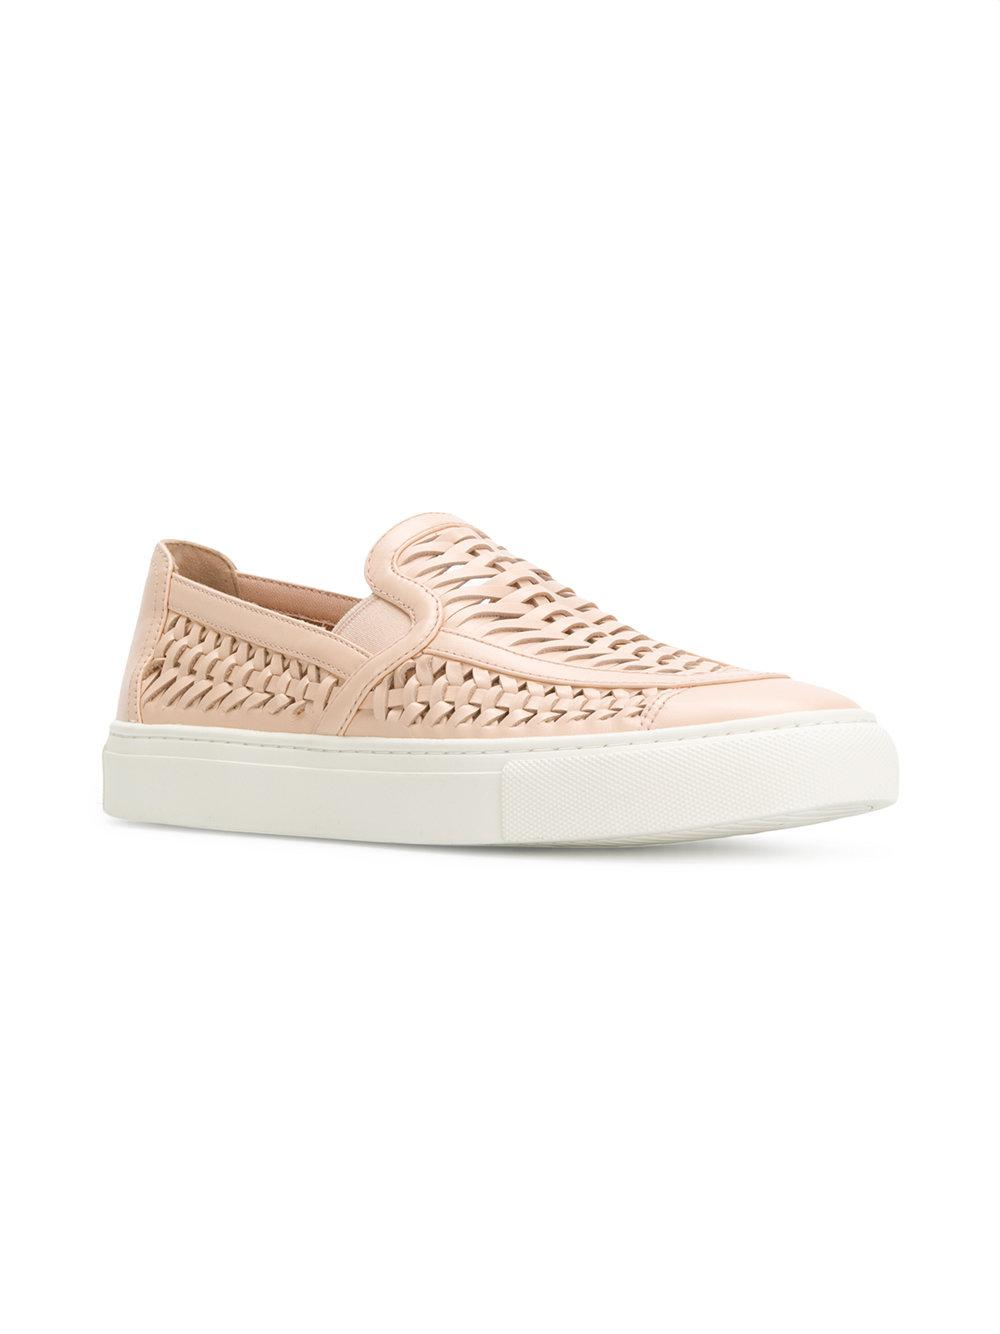 Huarache slip-on sneakers - Nude & Neutrals Tory Burch